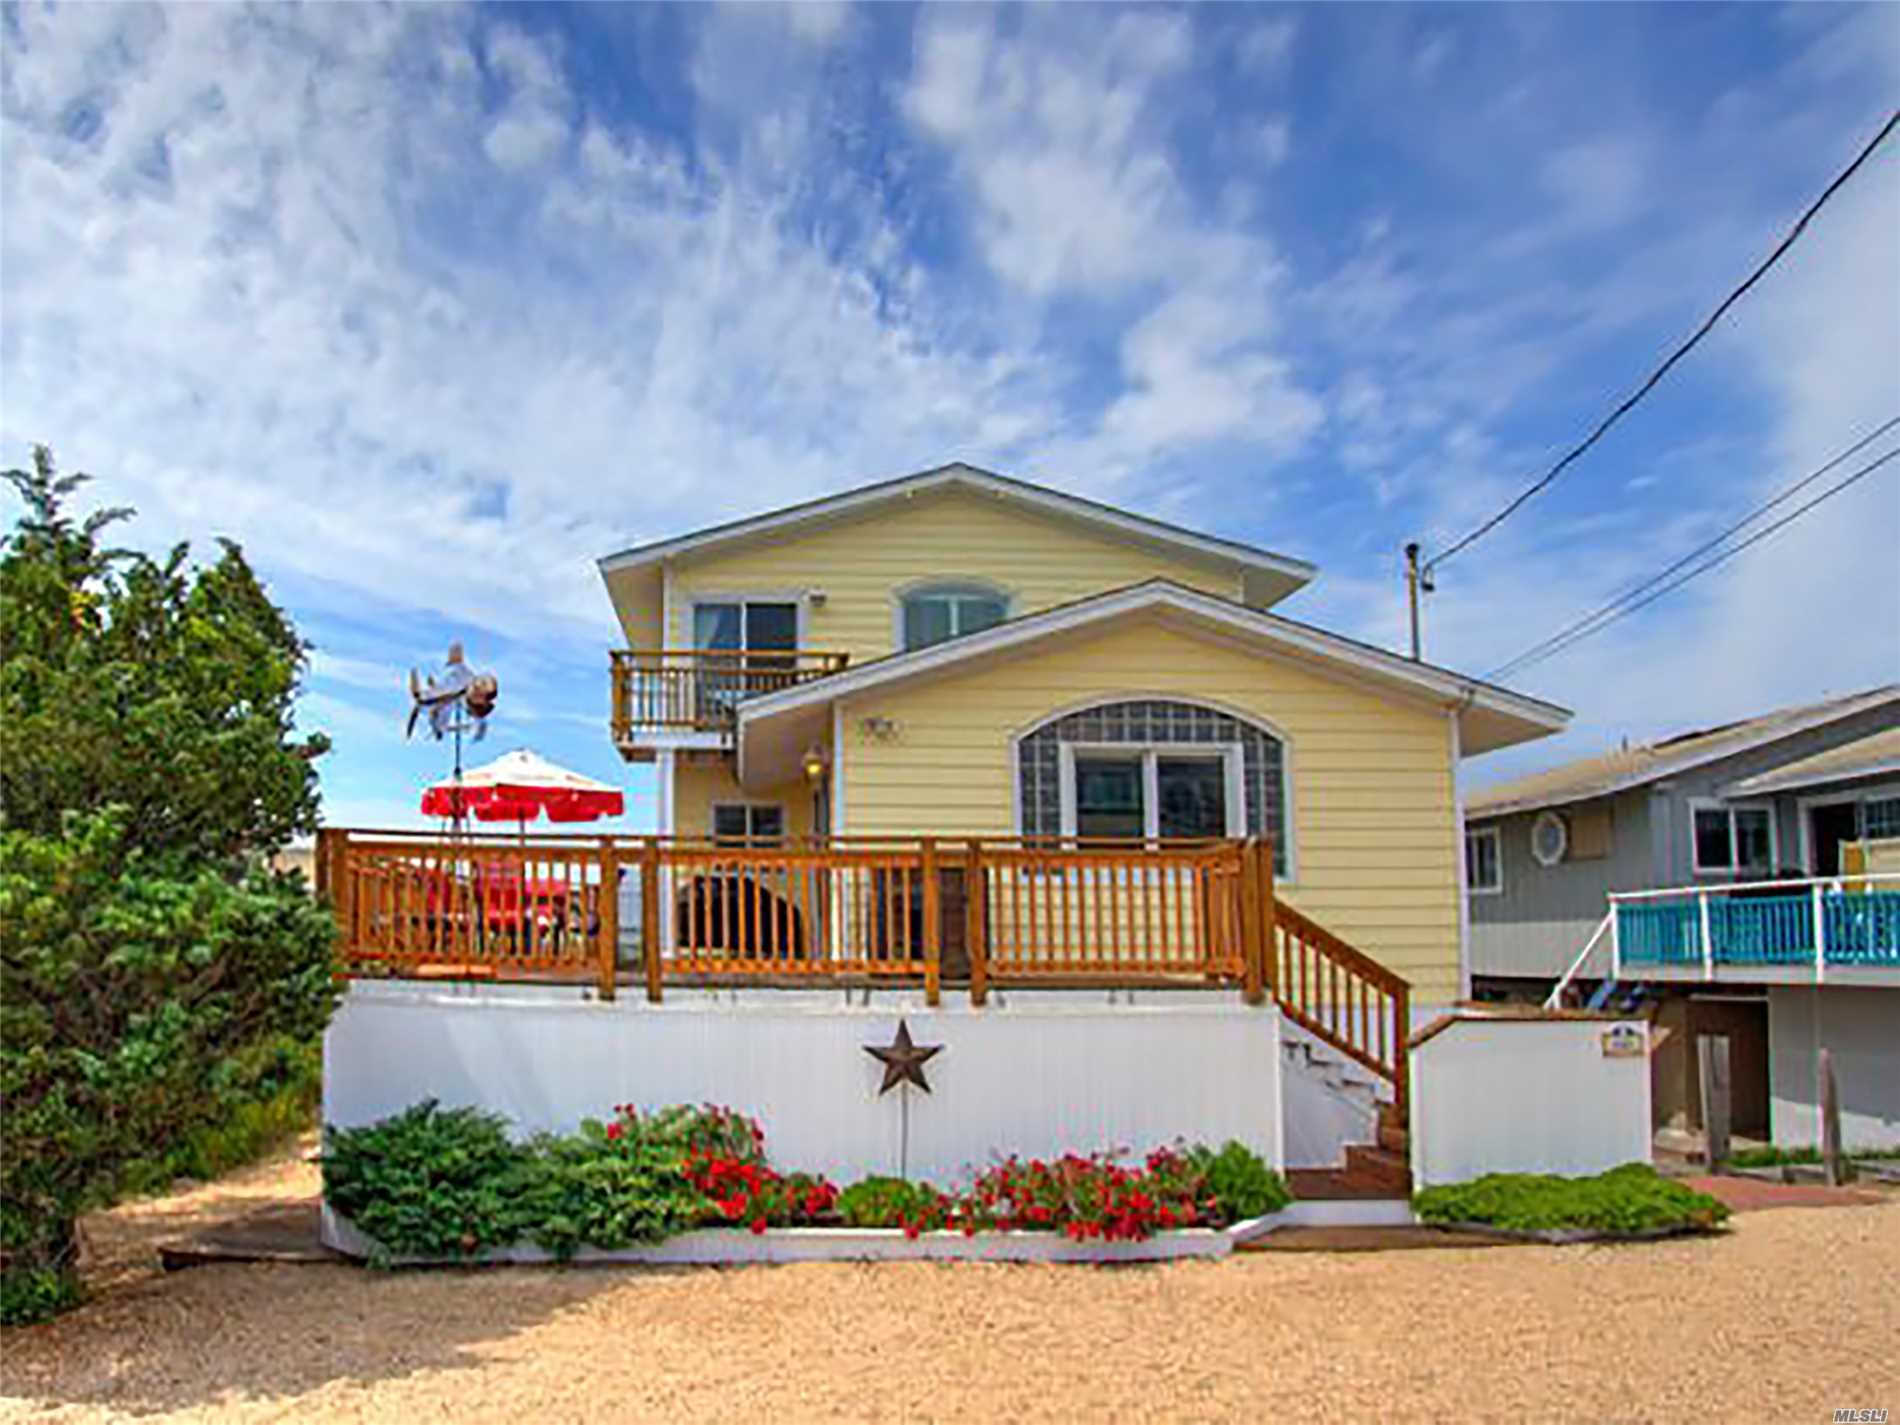 This Quaint 3 Bedroom Is Just Steps From The Ocean. It Features A First-Floor Open Floor Plan With 2 Bedrooms And A Bathroom. Move Upstairs To The Master En-Suite Bedroom With A Private Balcony That Has Great Ocean Views. Enjoy A Bbq On The Deck That Overlooks Dune Road At The End Of A Long Beach Day.